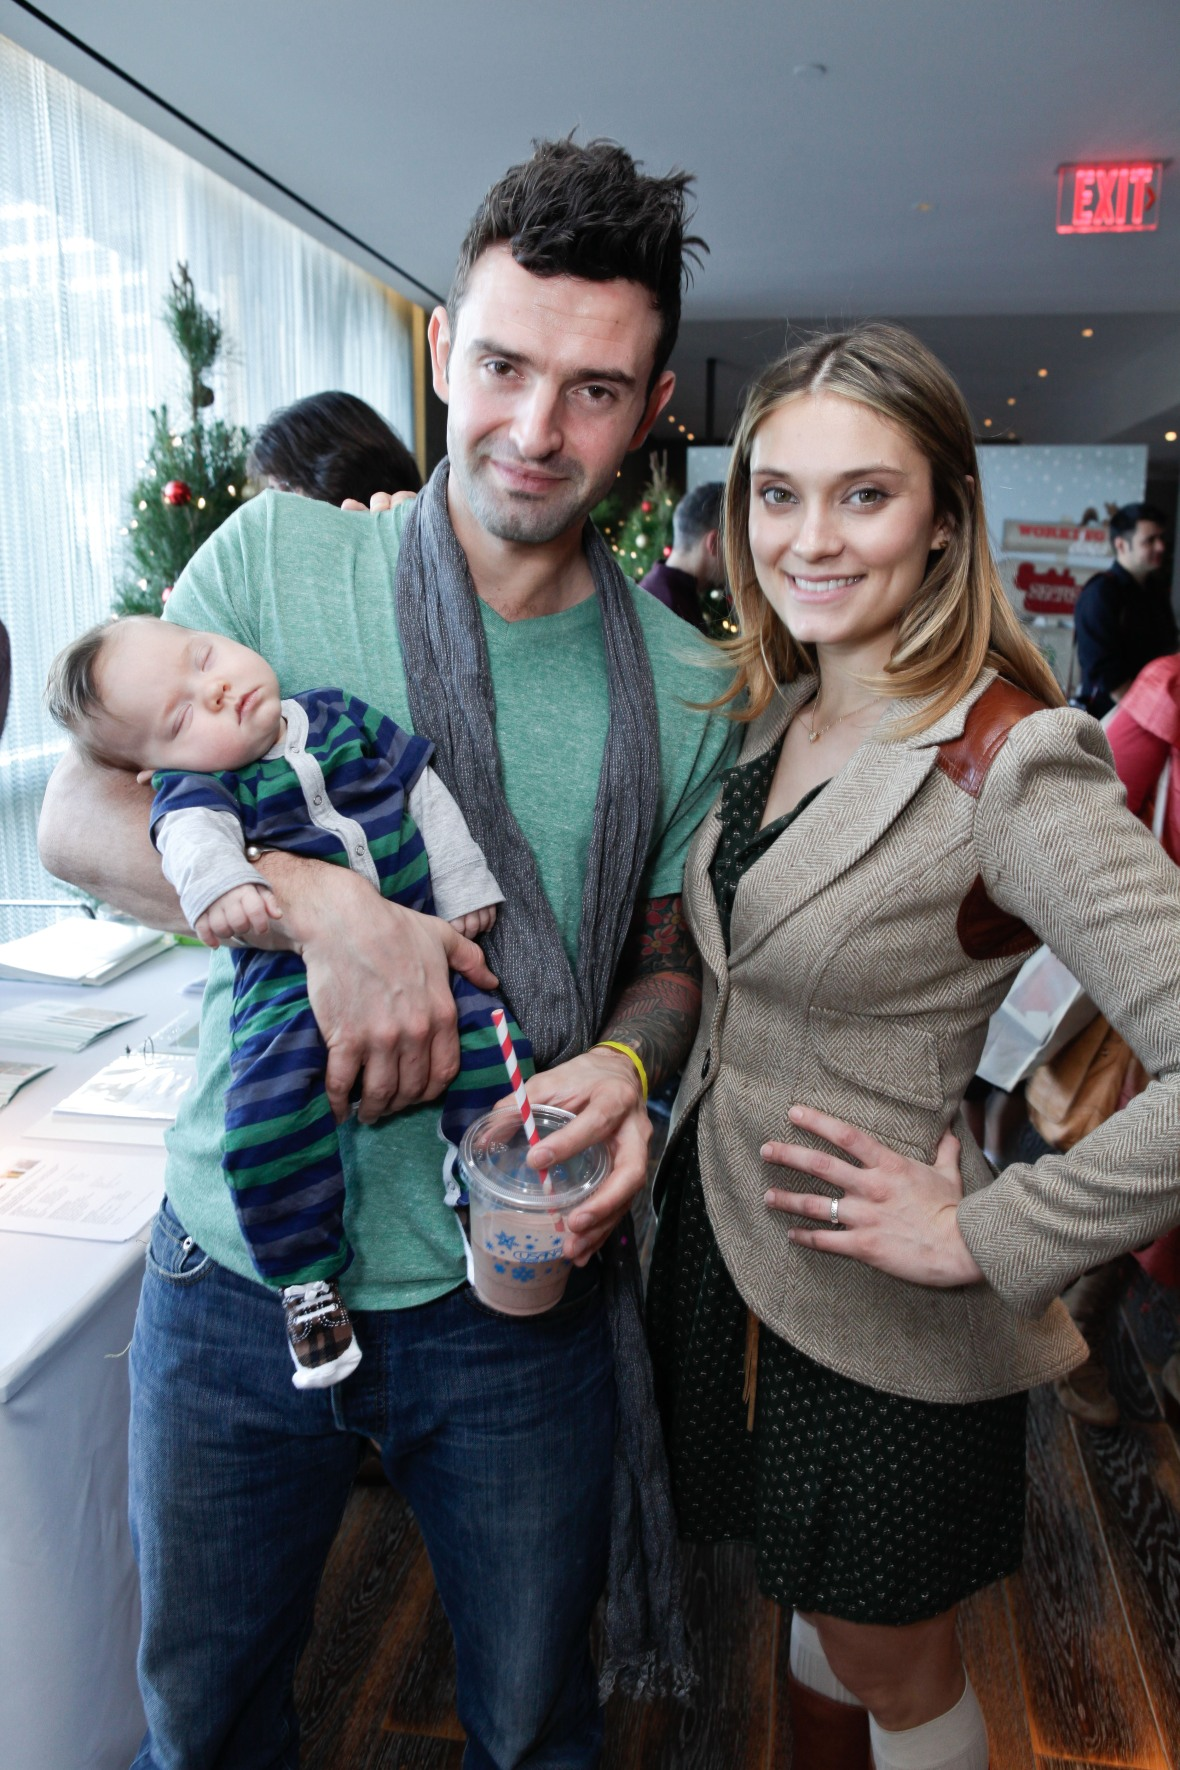 spencer grammer family getty images